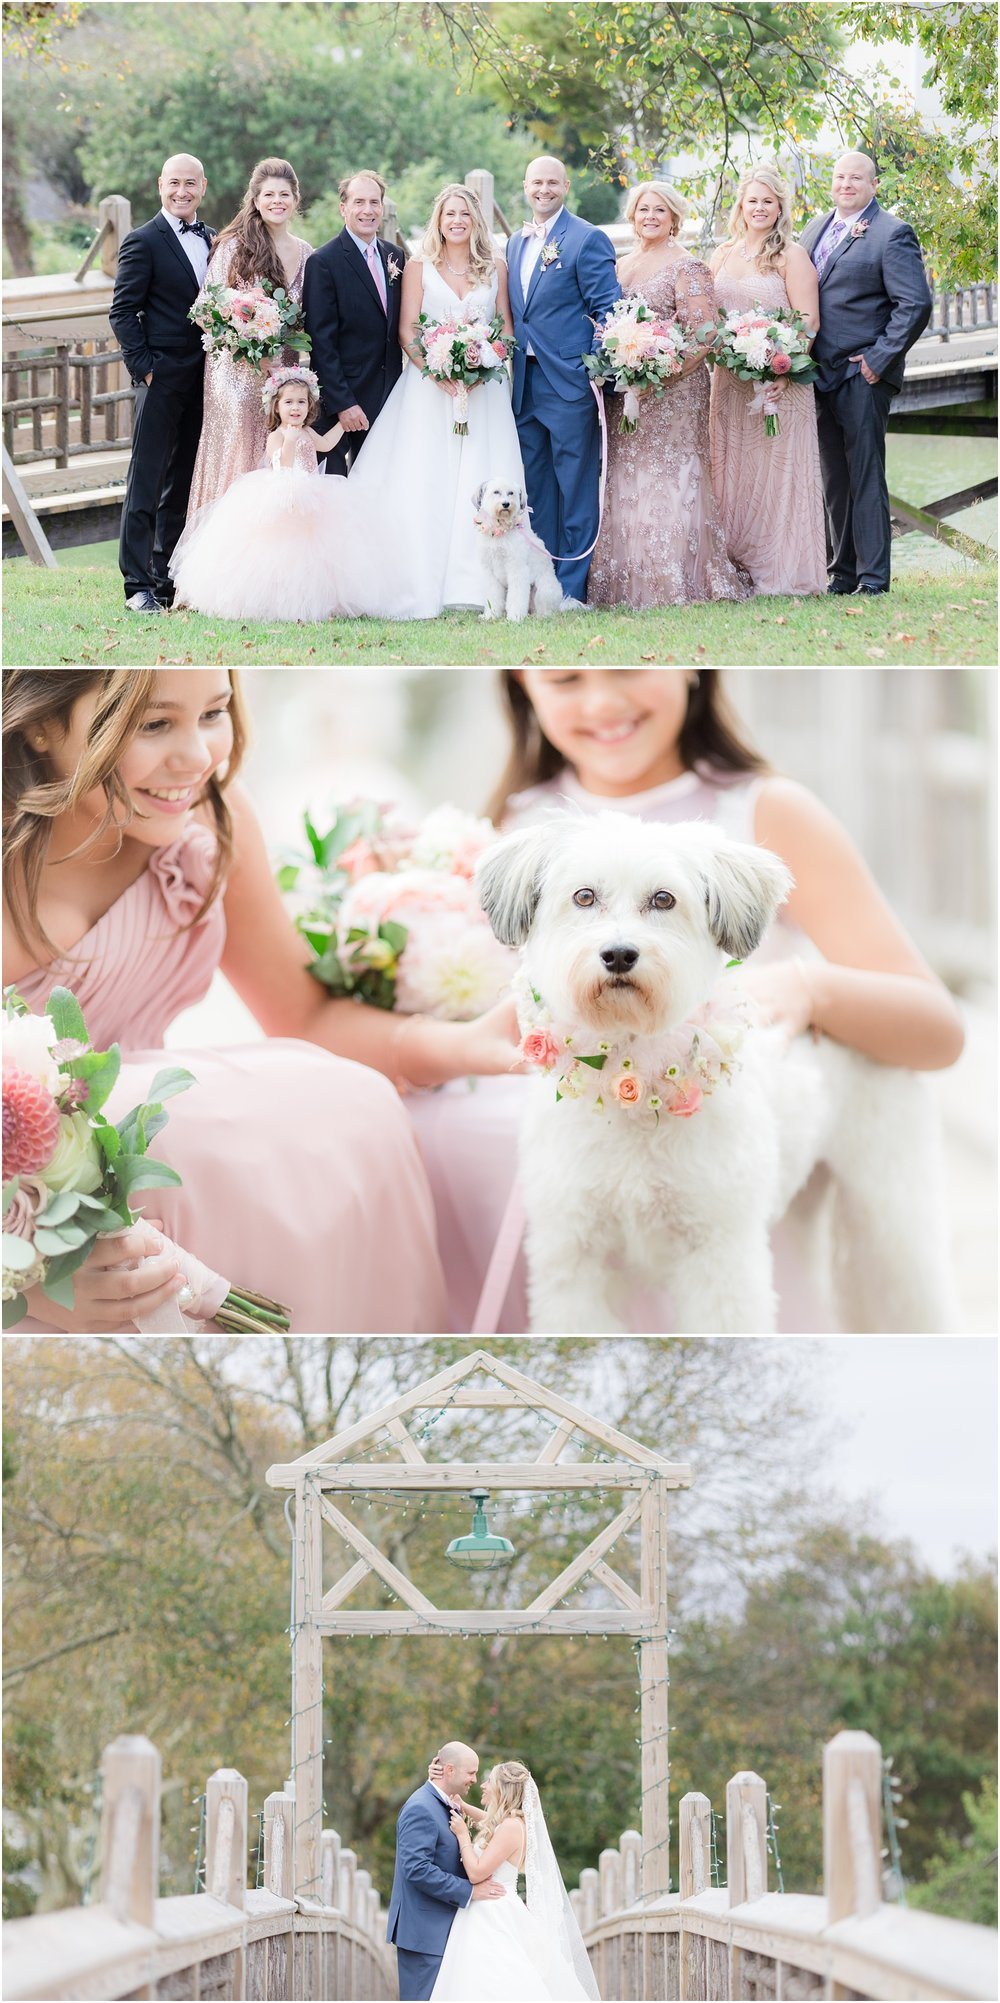 Family photos and dog with flower collar at a wedding in Spring Lake, NJ.